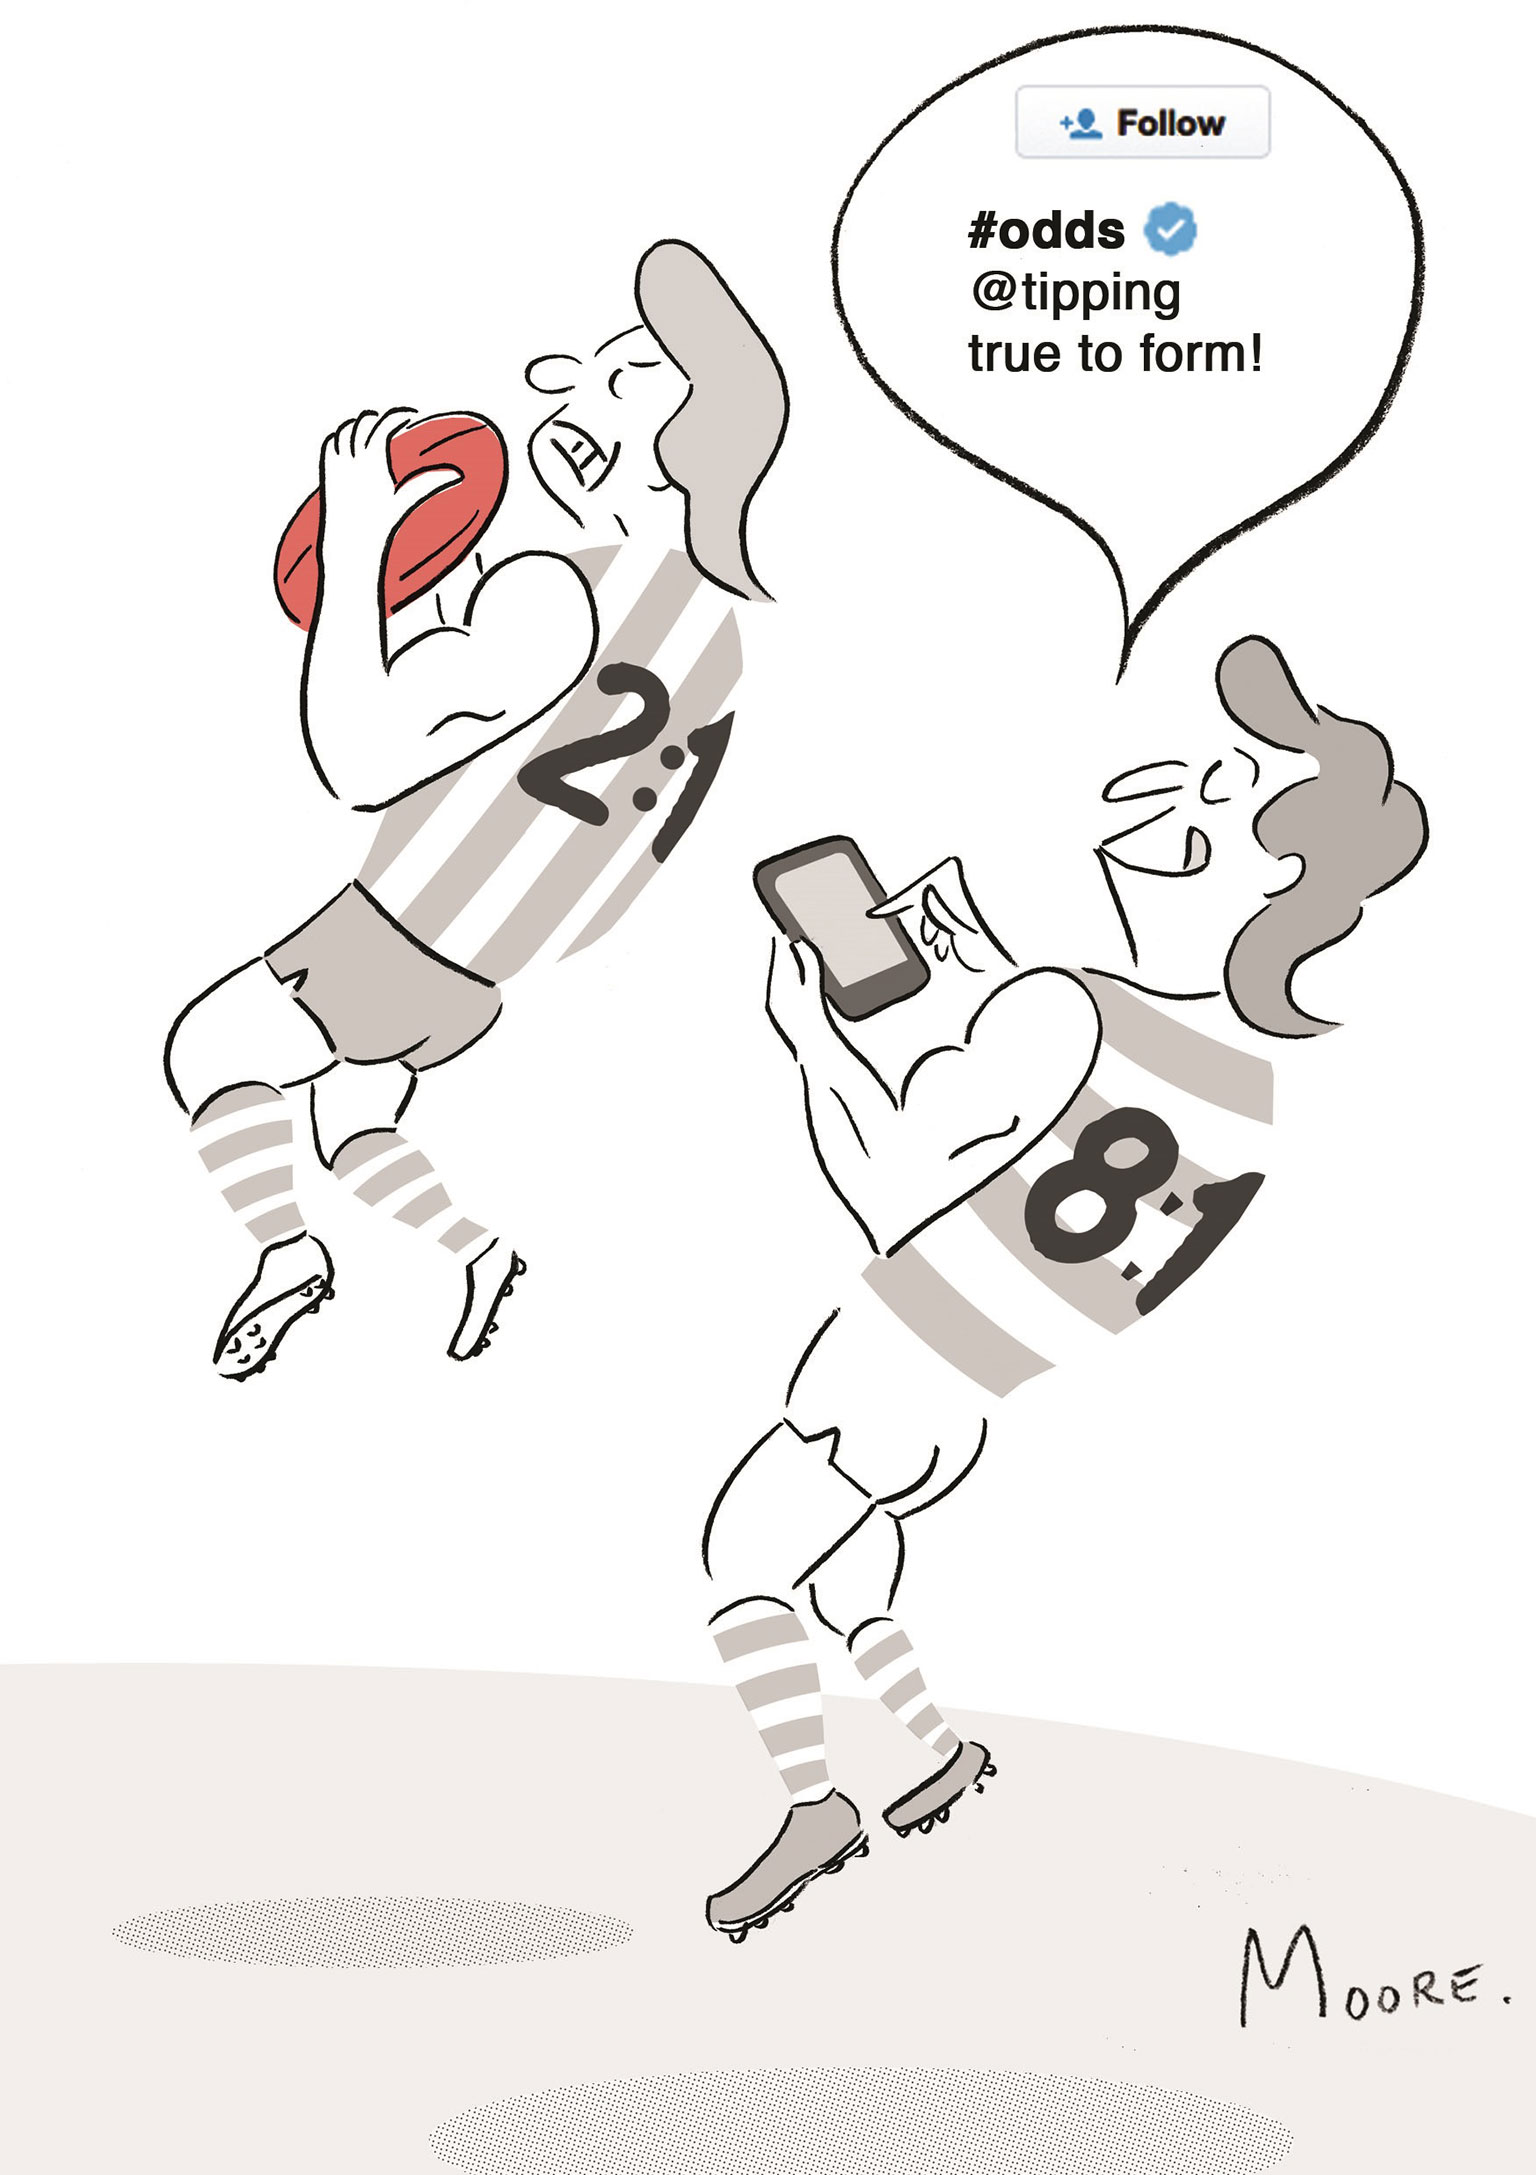 Cartoon of footy player placing a bet on his phone while opponent takes a mark